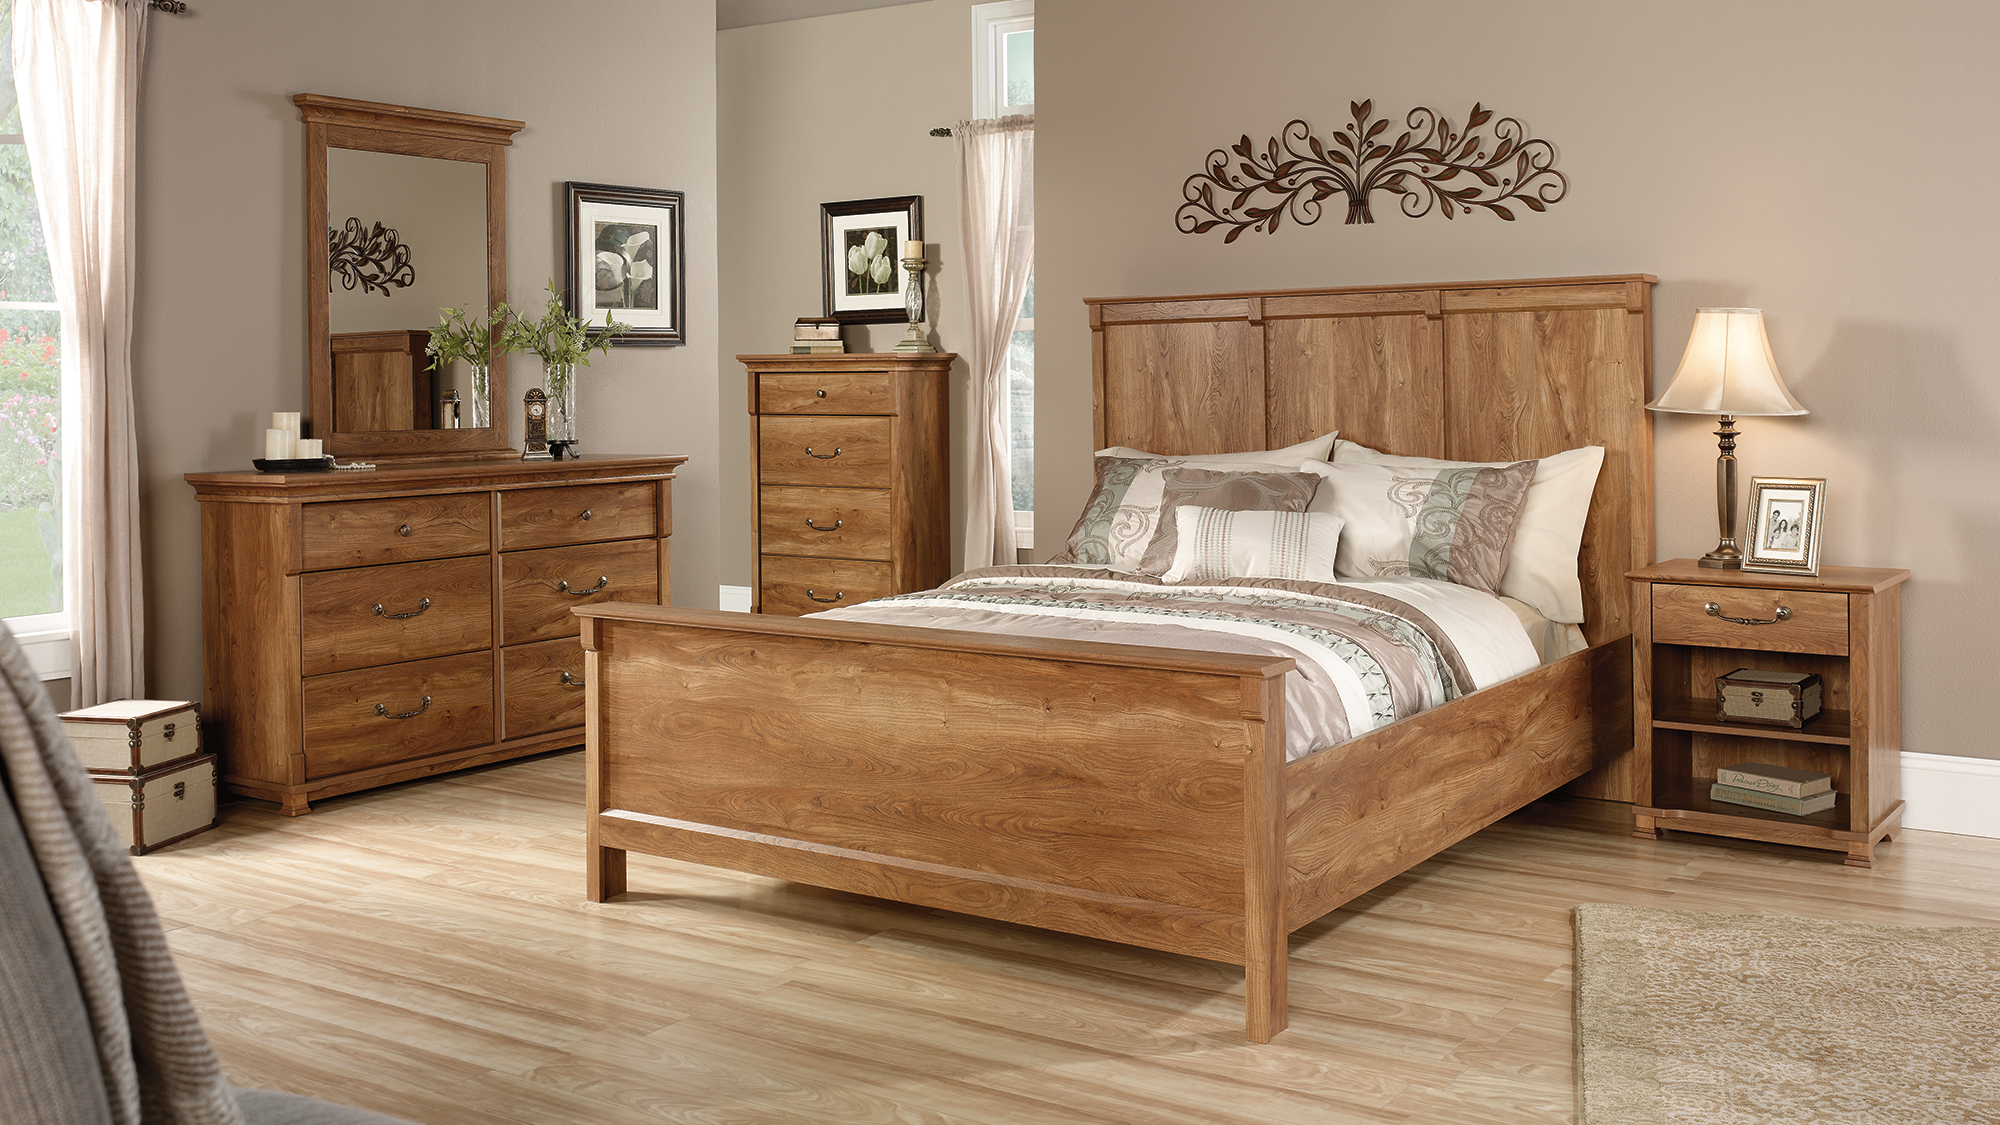 lovely wooden bed and dresser by sauder furniture on wooden floor for bedroom decor ideas